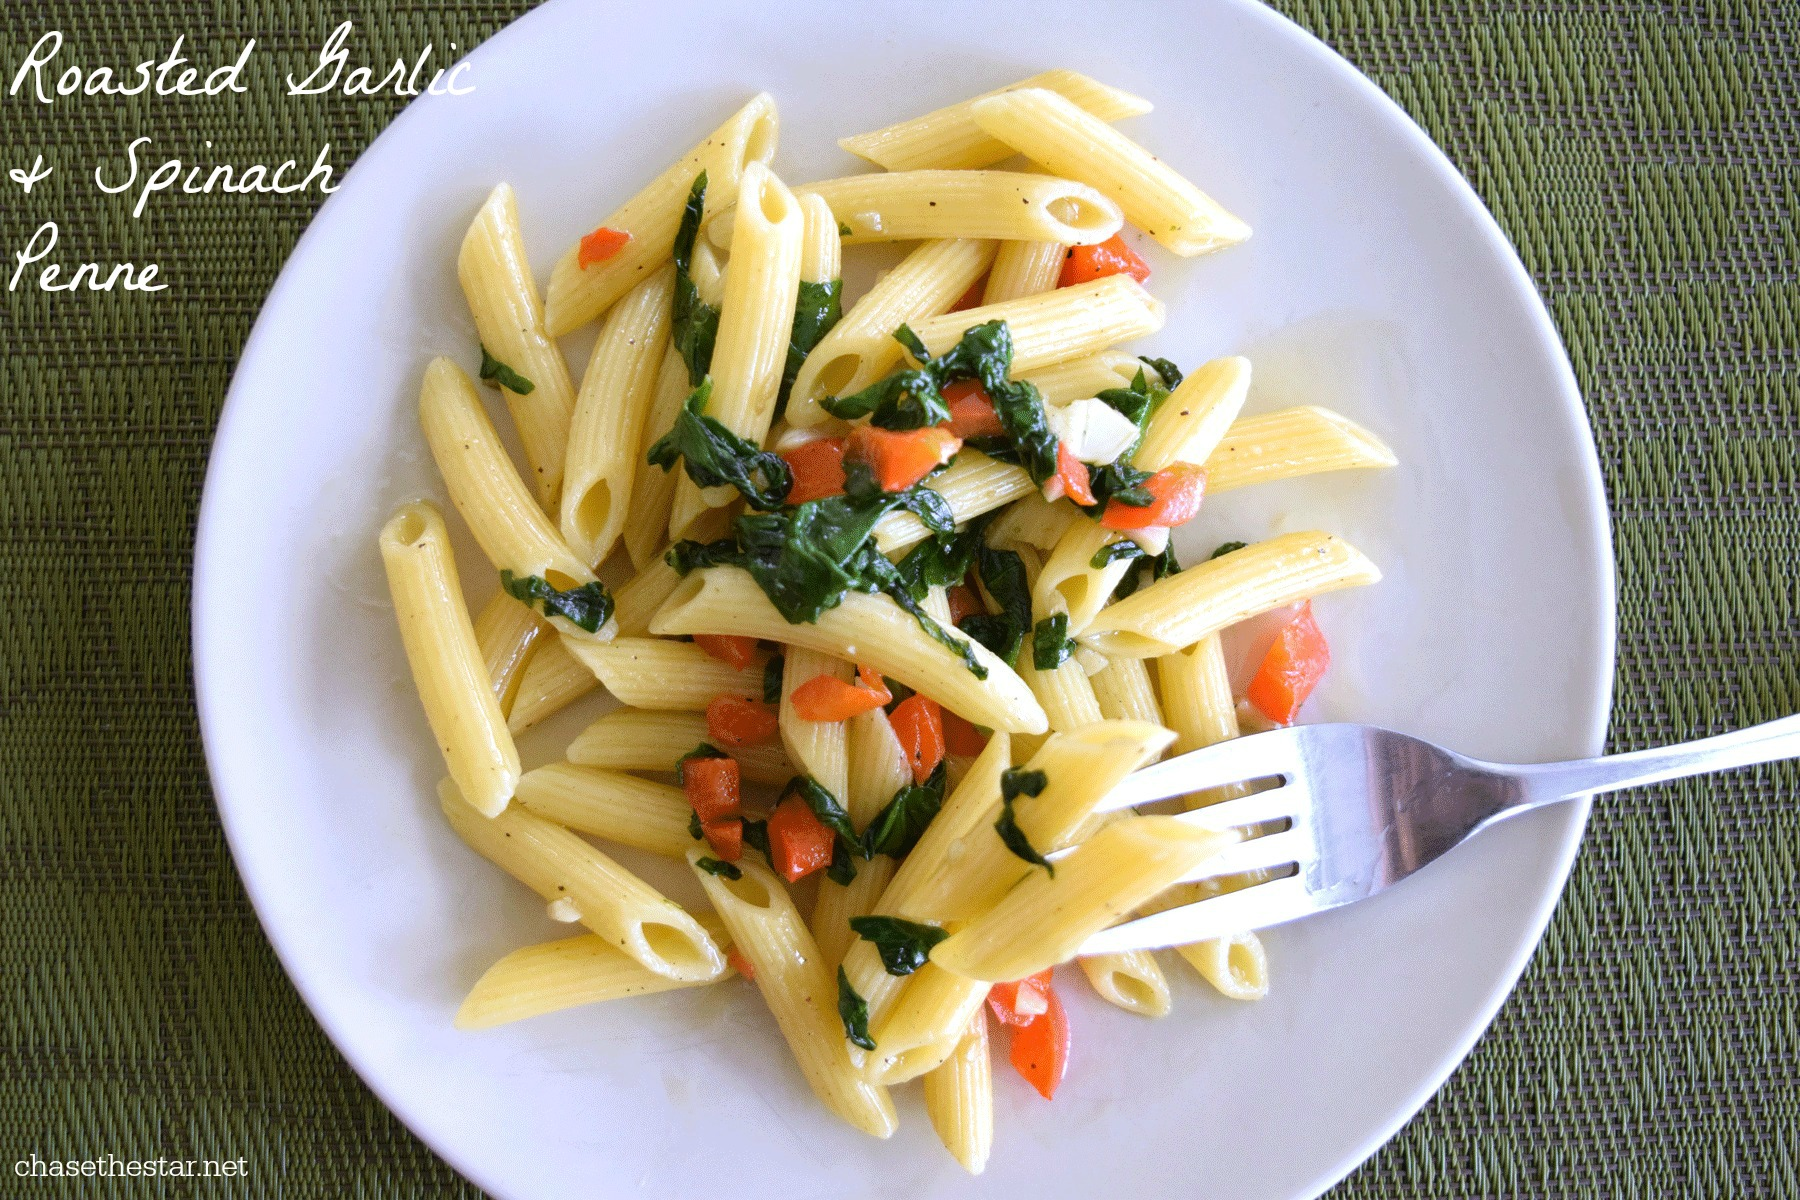 Delicious Roasted Garlic and Spinach with Penne via Chasethestar.net cover